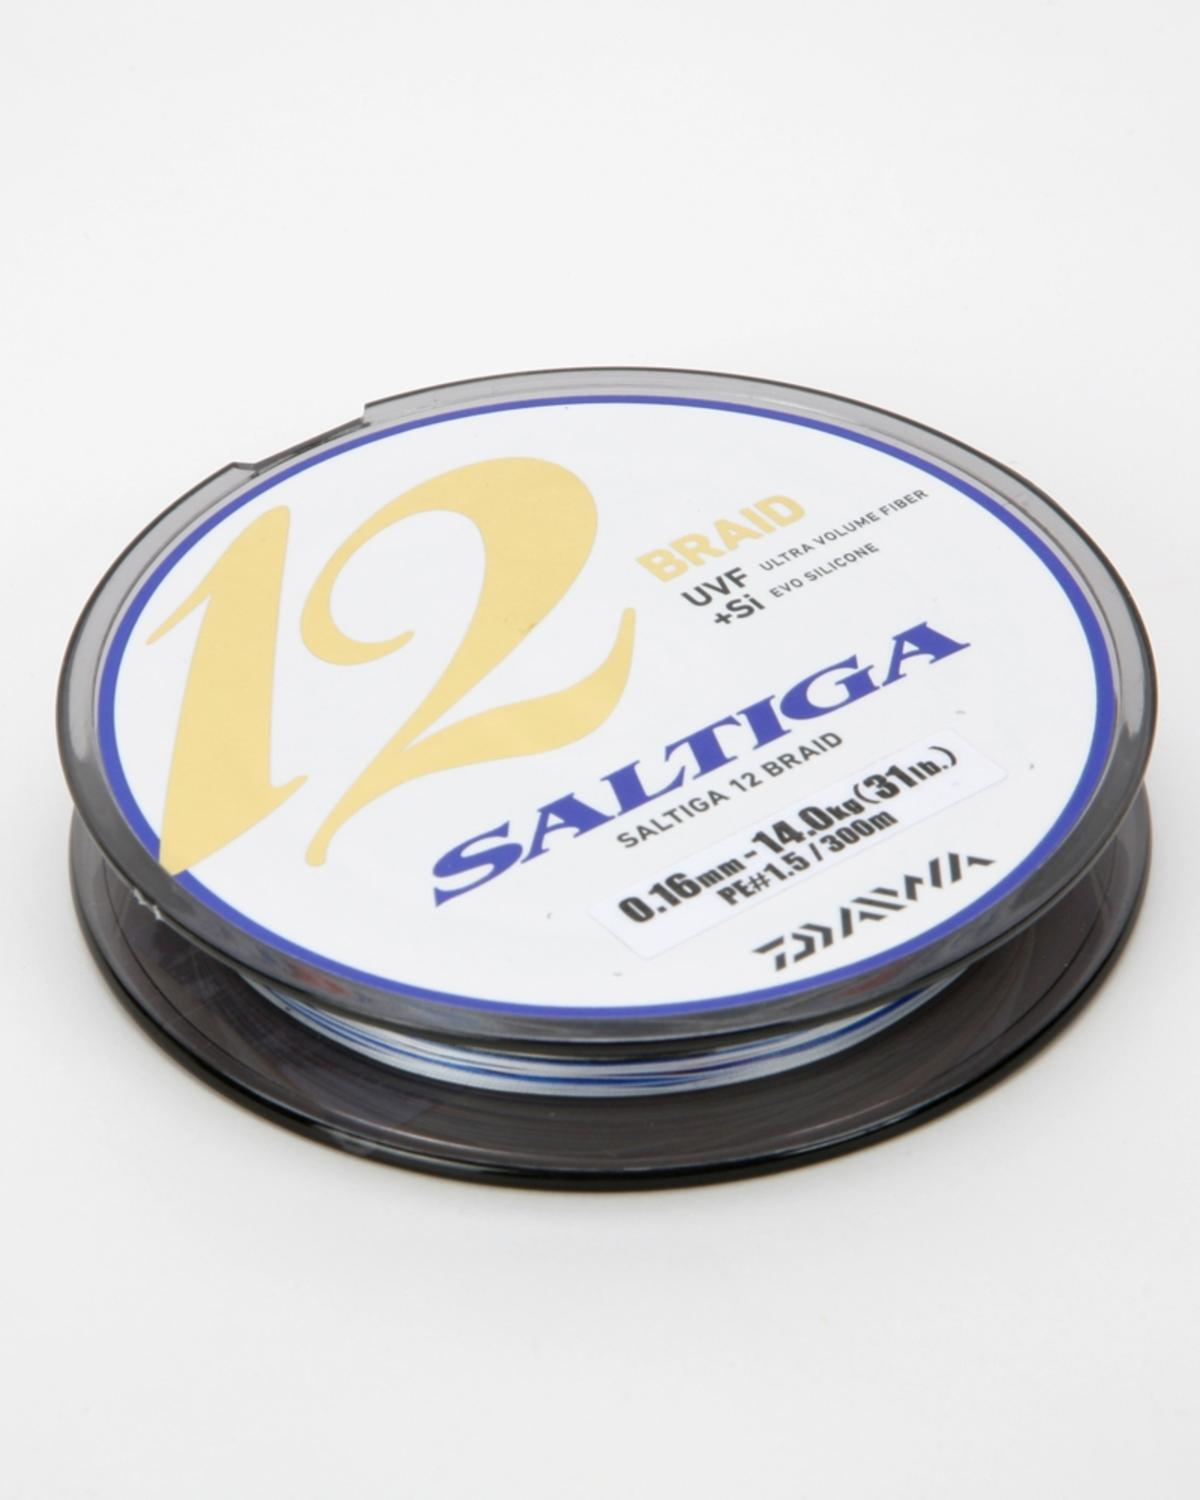 CLEARANCE NEW DAIWA SALTIGA 12 BRAID 300m SPOOL ALL BREAKING STRAINS RRP £94.99